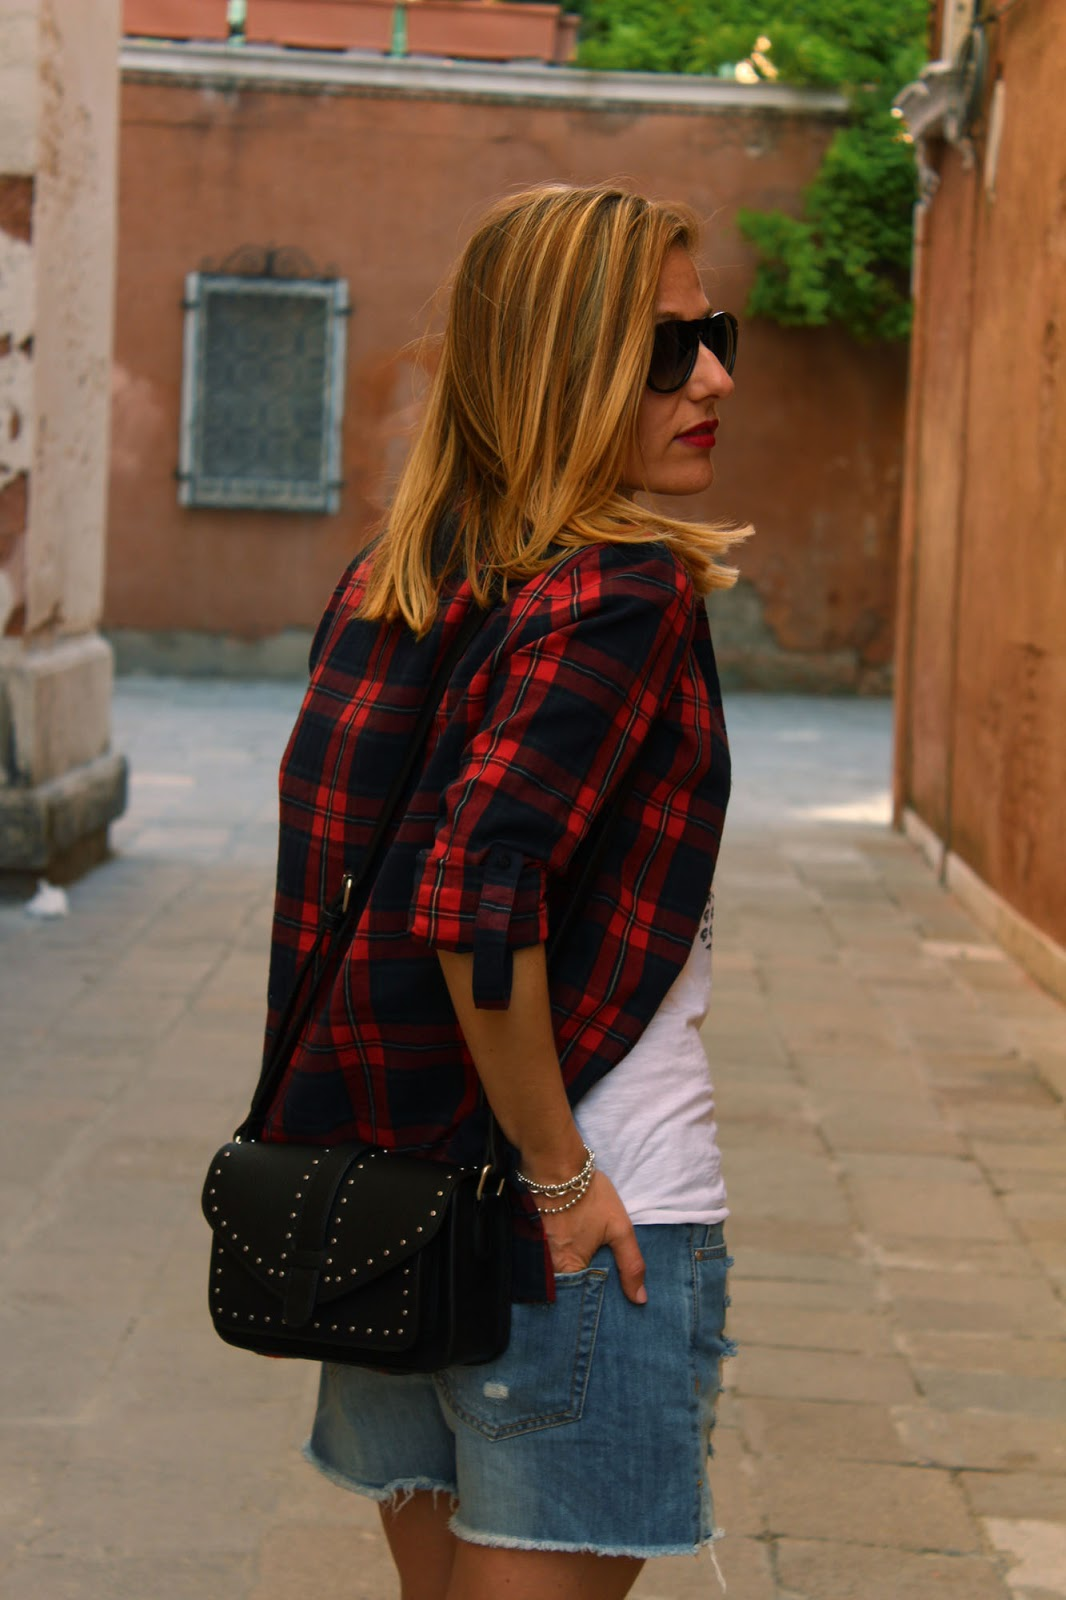 Eniwhere Fashion - Plaid shirt - Venezia